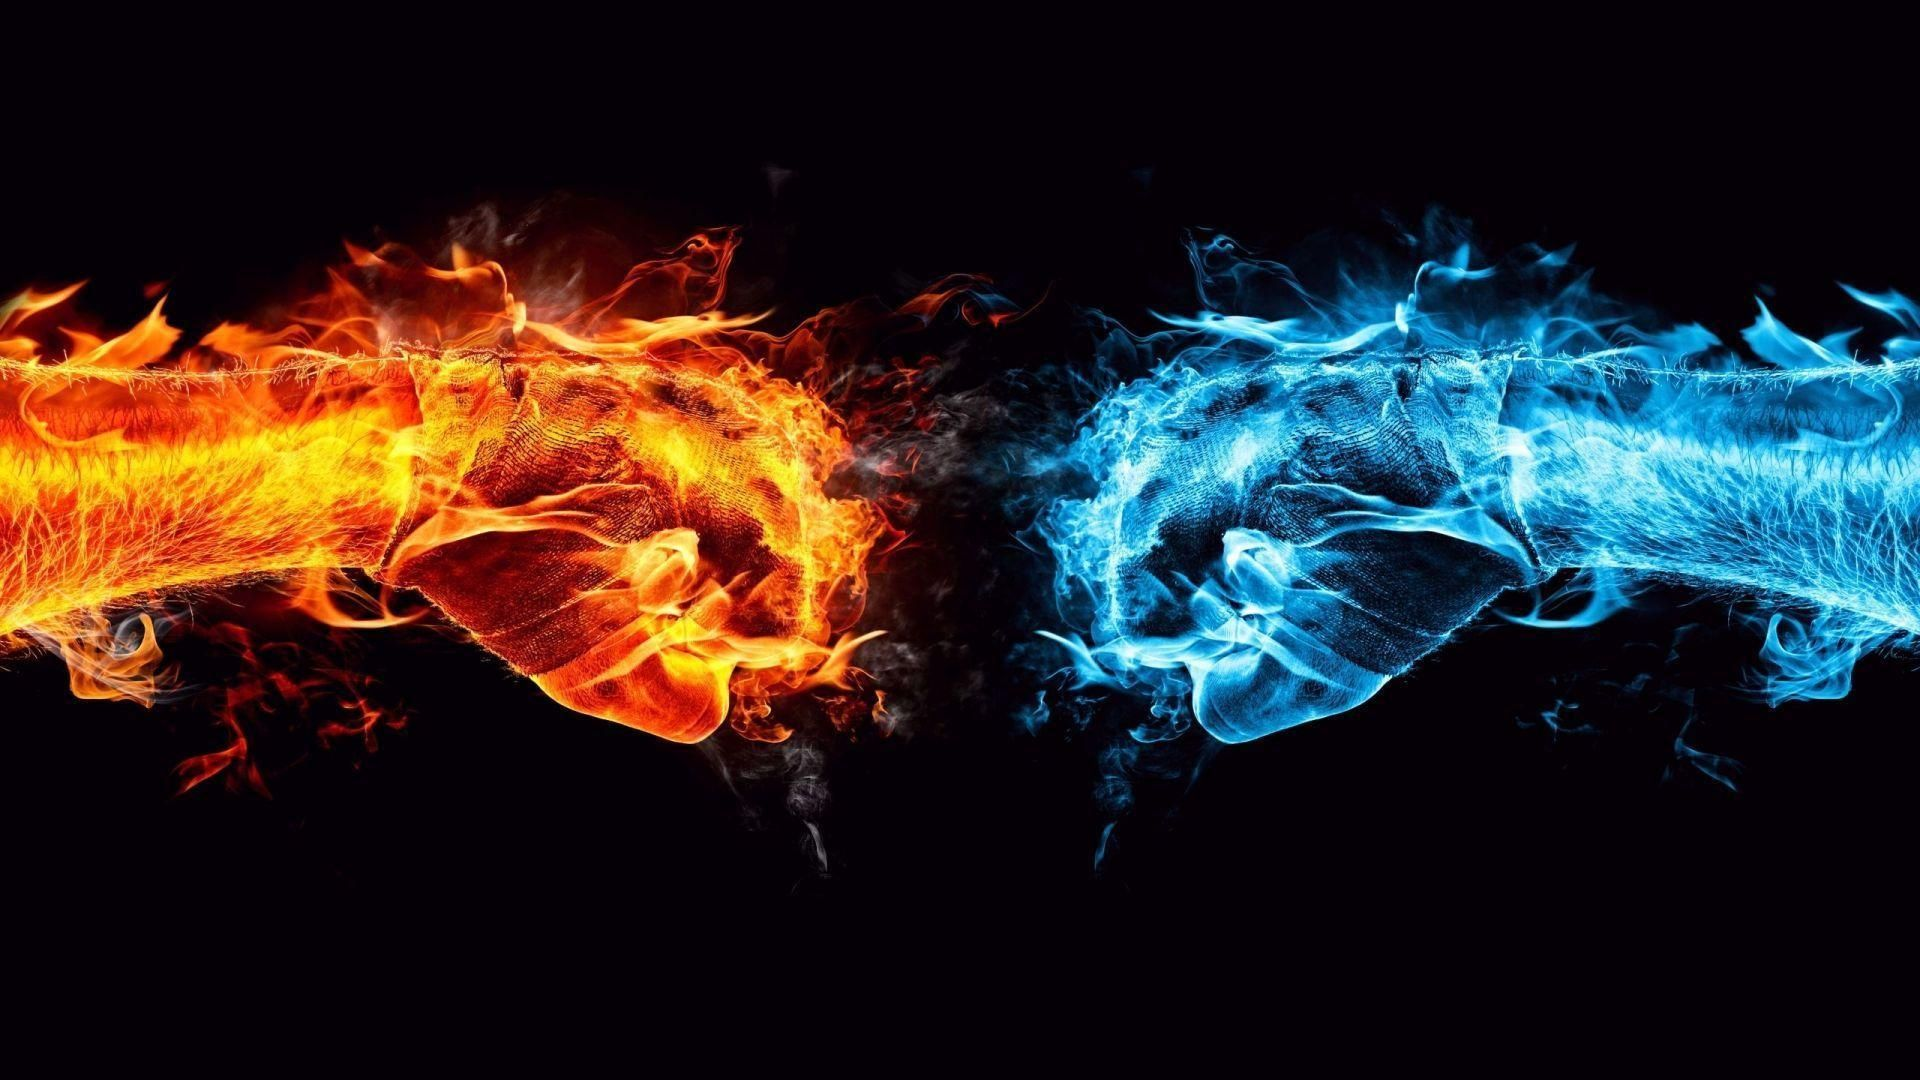 Fire Wallpapers High Quality 2048x1152 Wallpapers Cool Backgrounds Just Do It Wallpapers